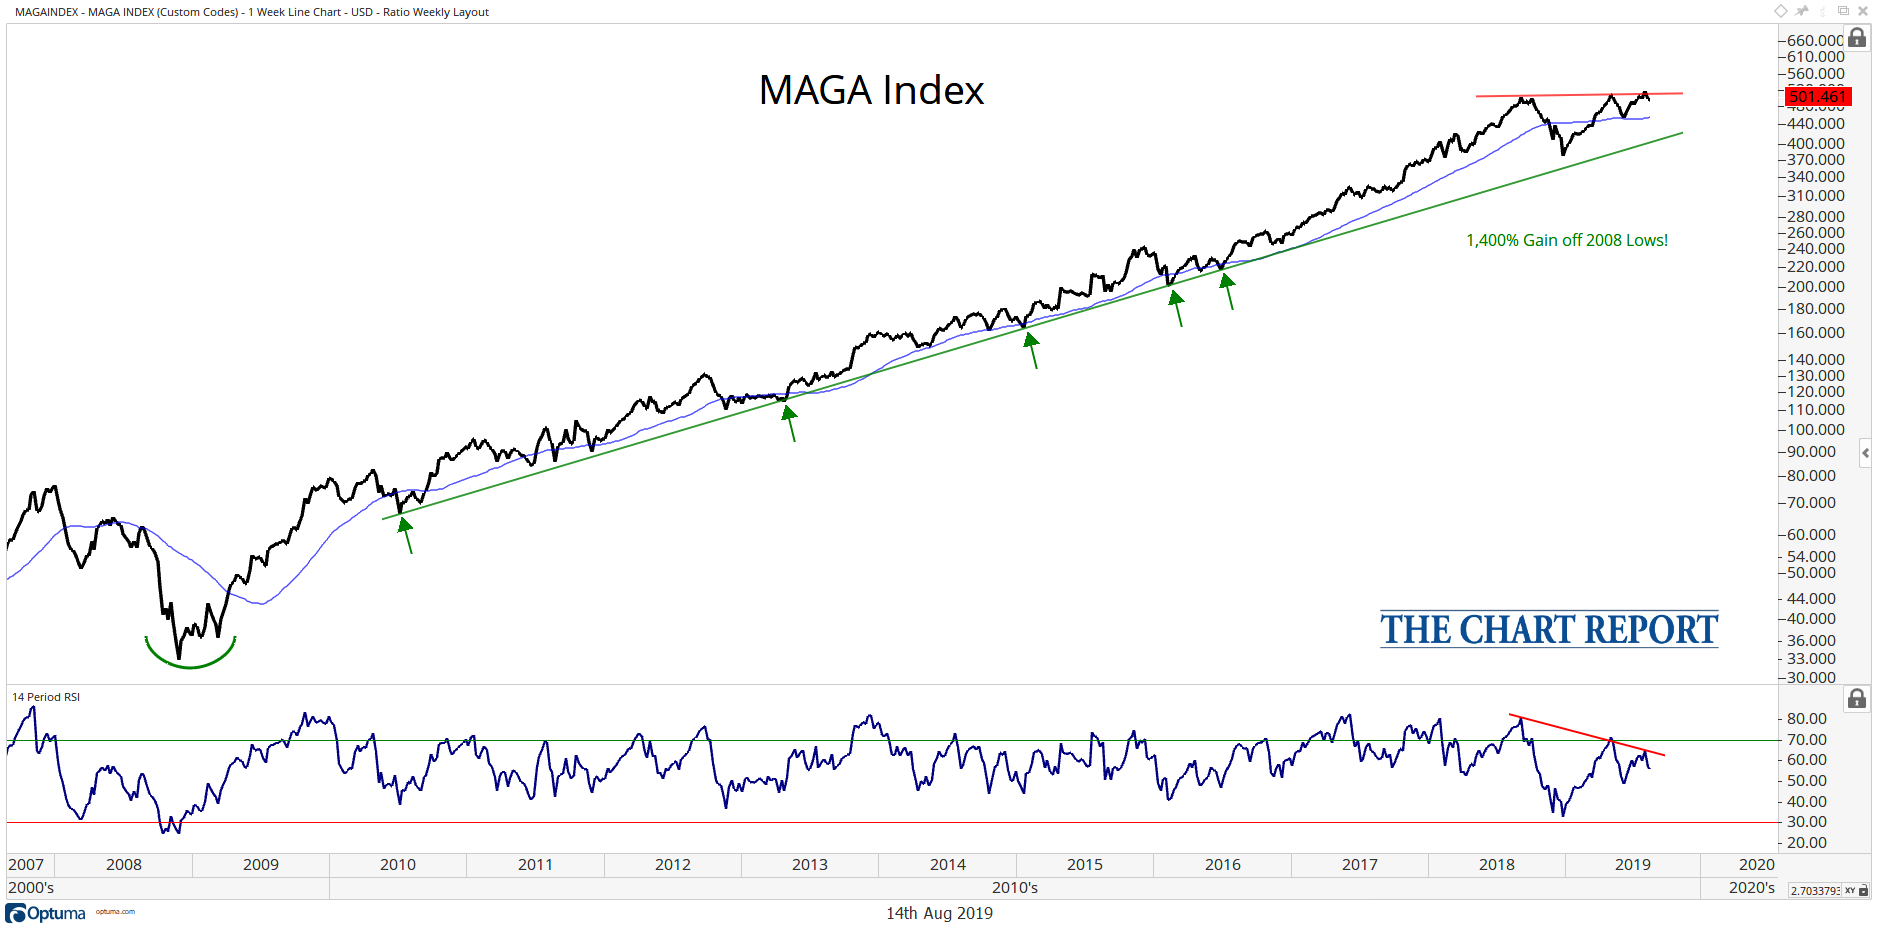 What the MAGA Index is Signaling About US Stocks - The Chart